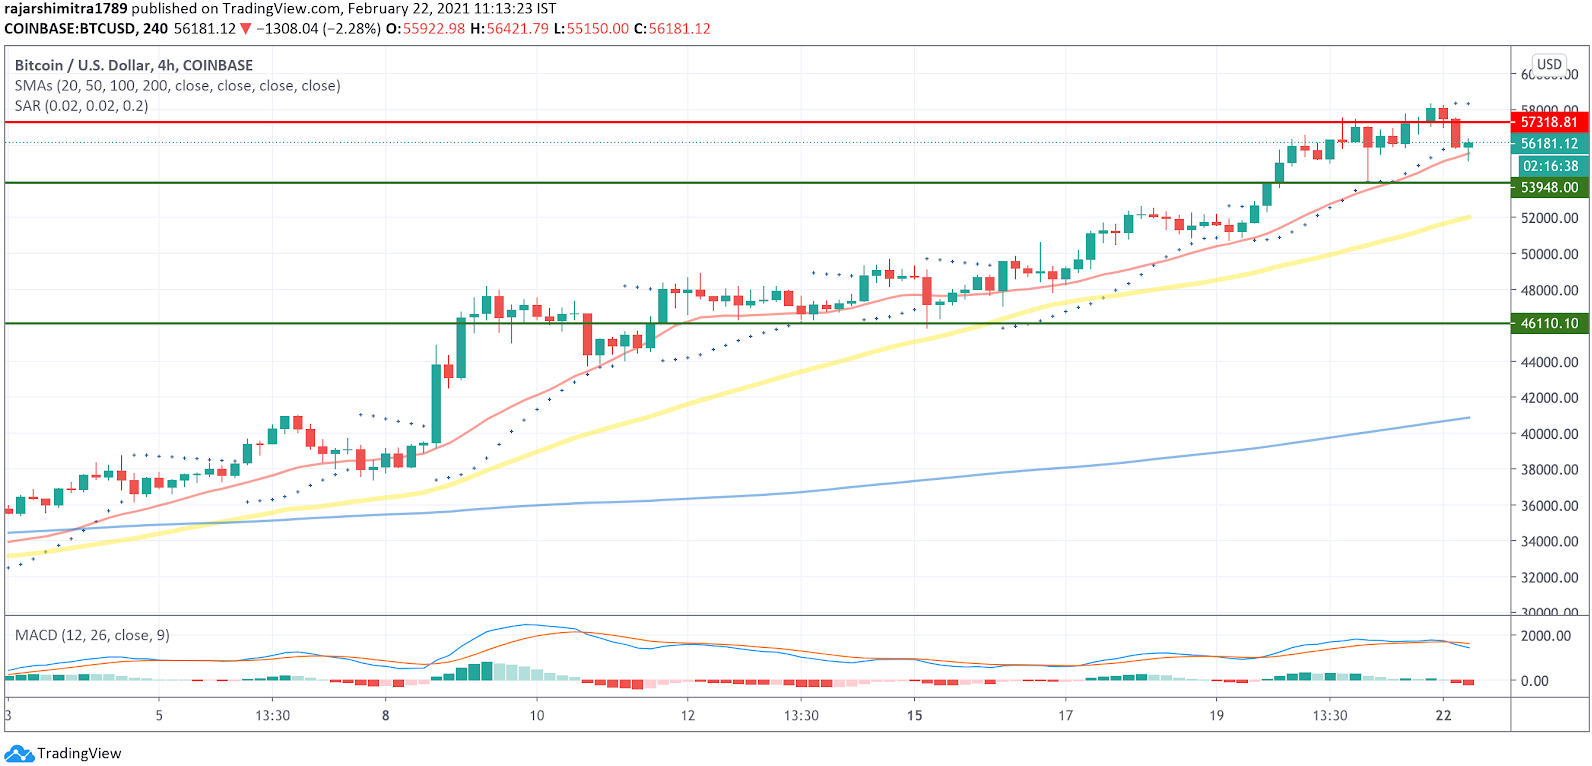 btc/usd 4-hour chart 022221